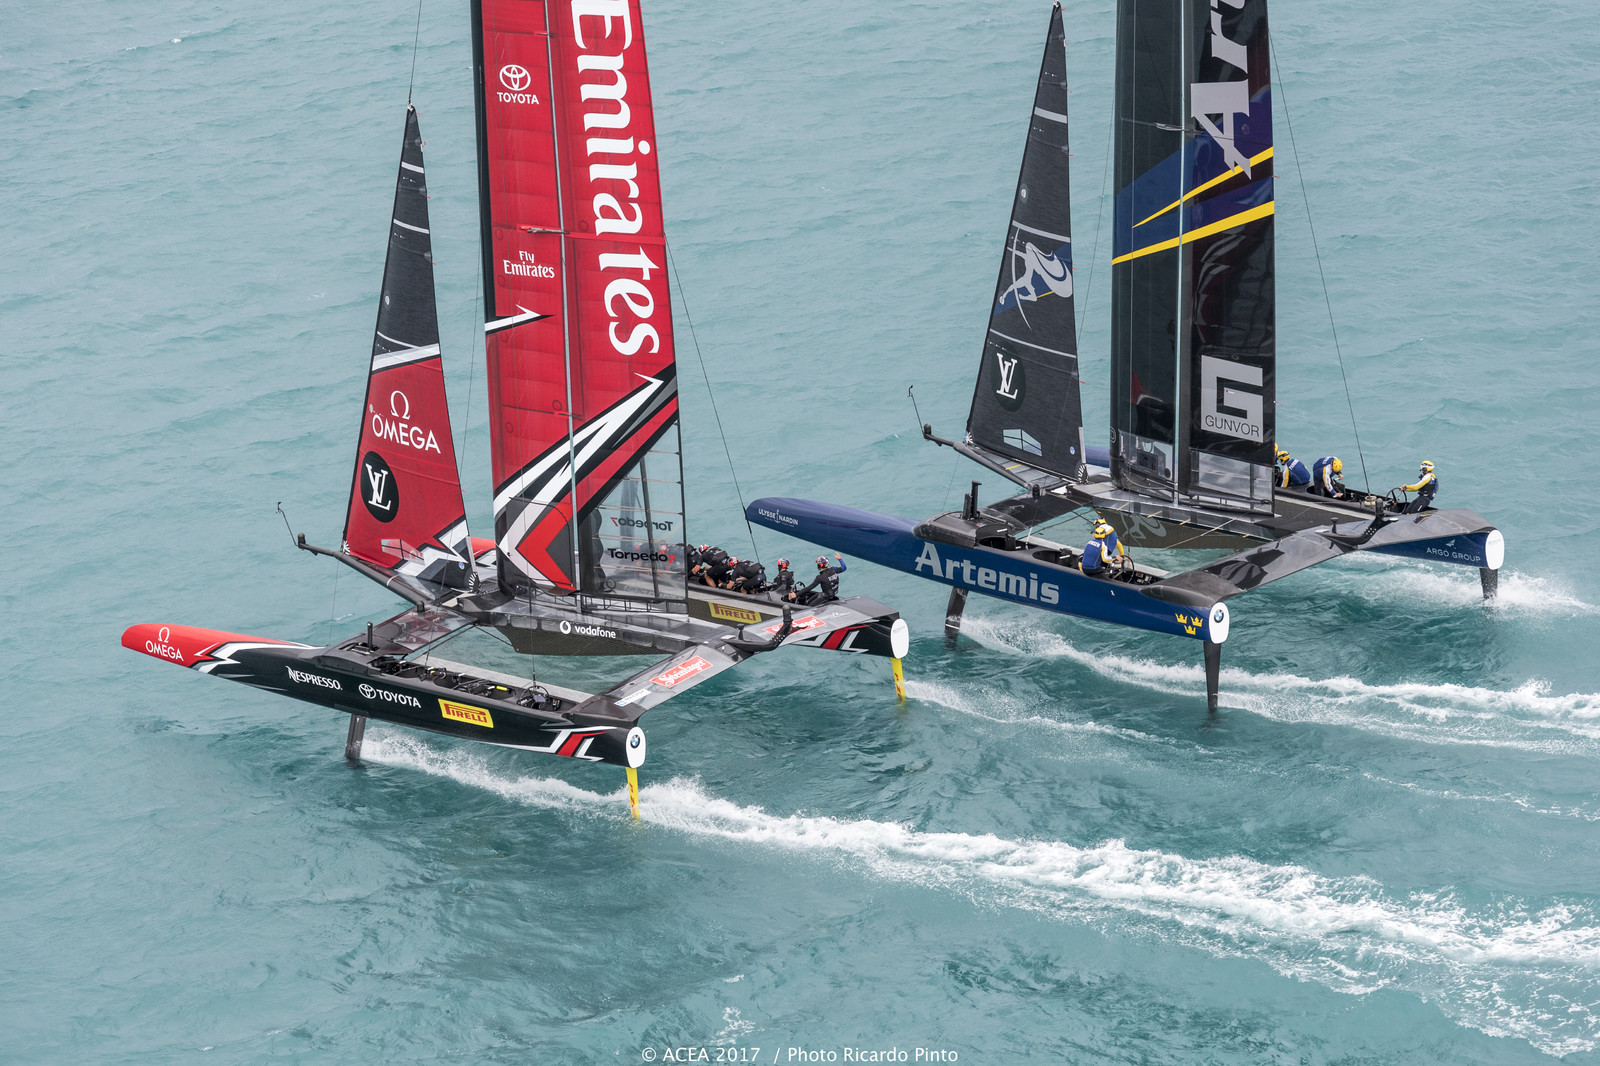 Team New Zealand vs Artemis in America's Cup Challenger Finals - Image: Ricardo Pinto